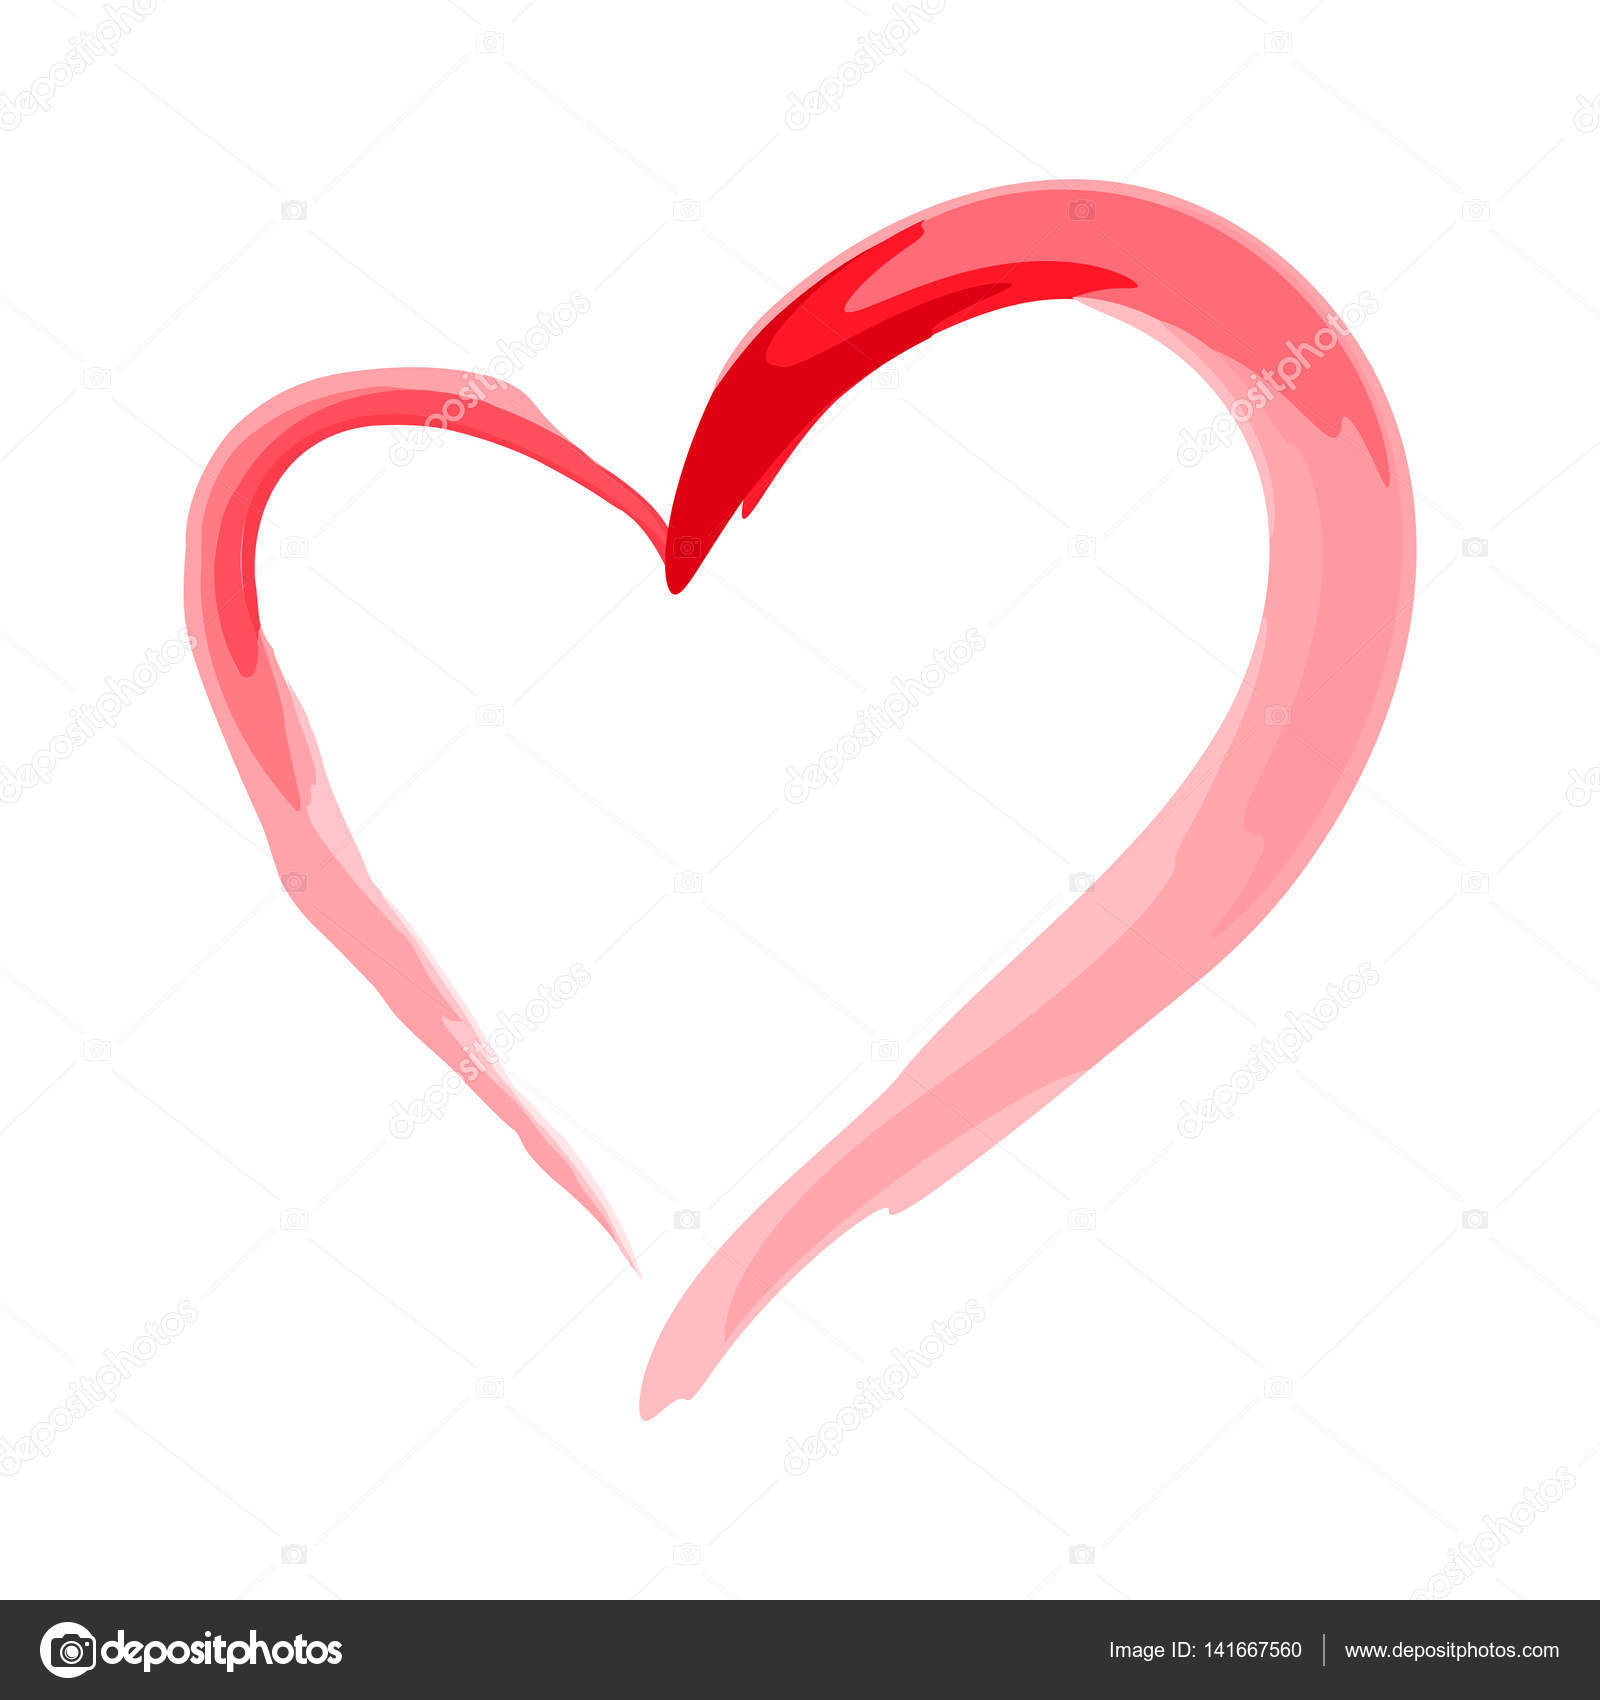 Heart Shape Design For Love Symbols Valentines Day Stock Vector